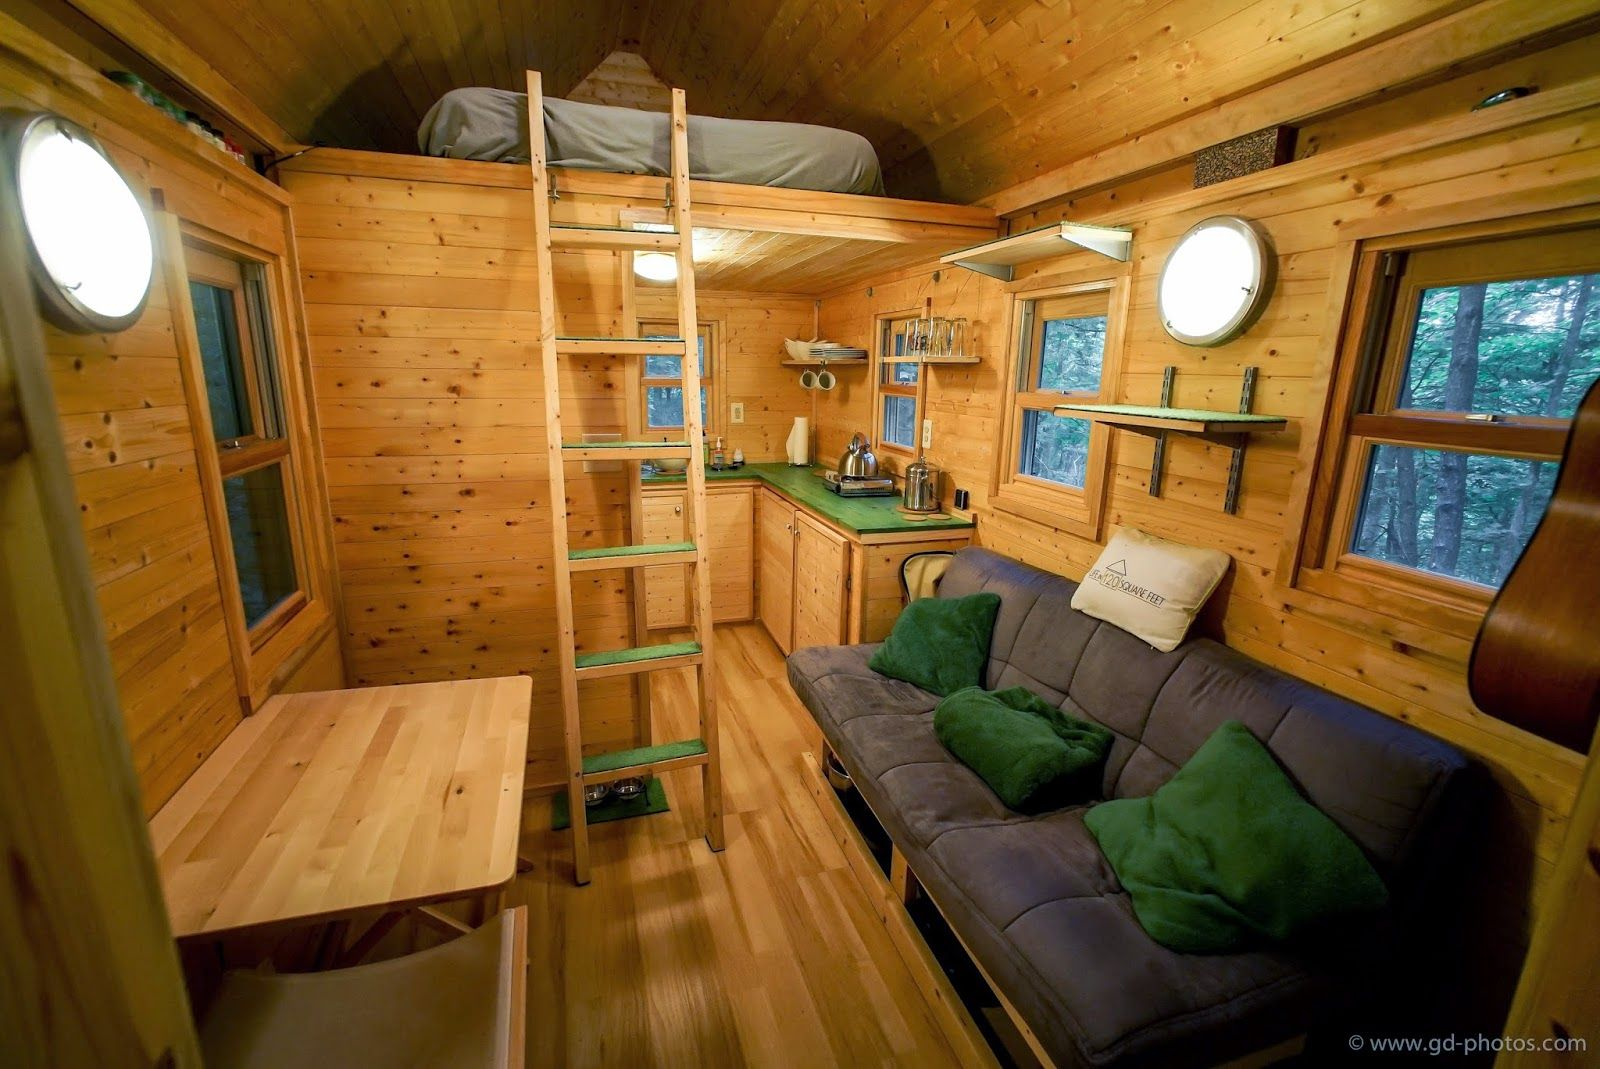 Life In 120 Square Feet Tiny House Giant Journey S Trip To 120 Squre Feet Shed To Tiny House Tiny House Layout Tiny House Living